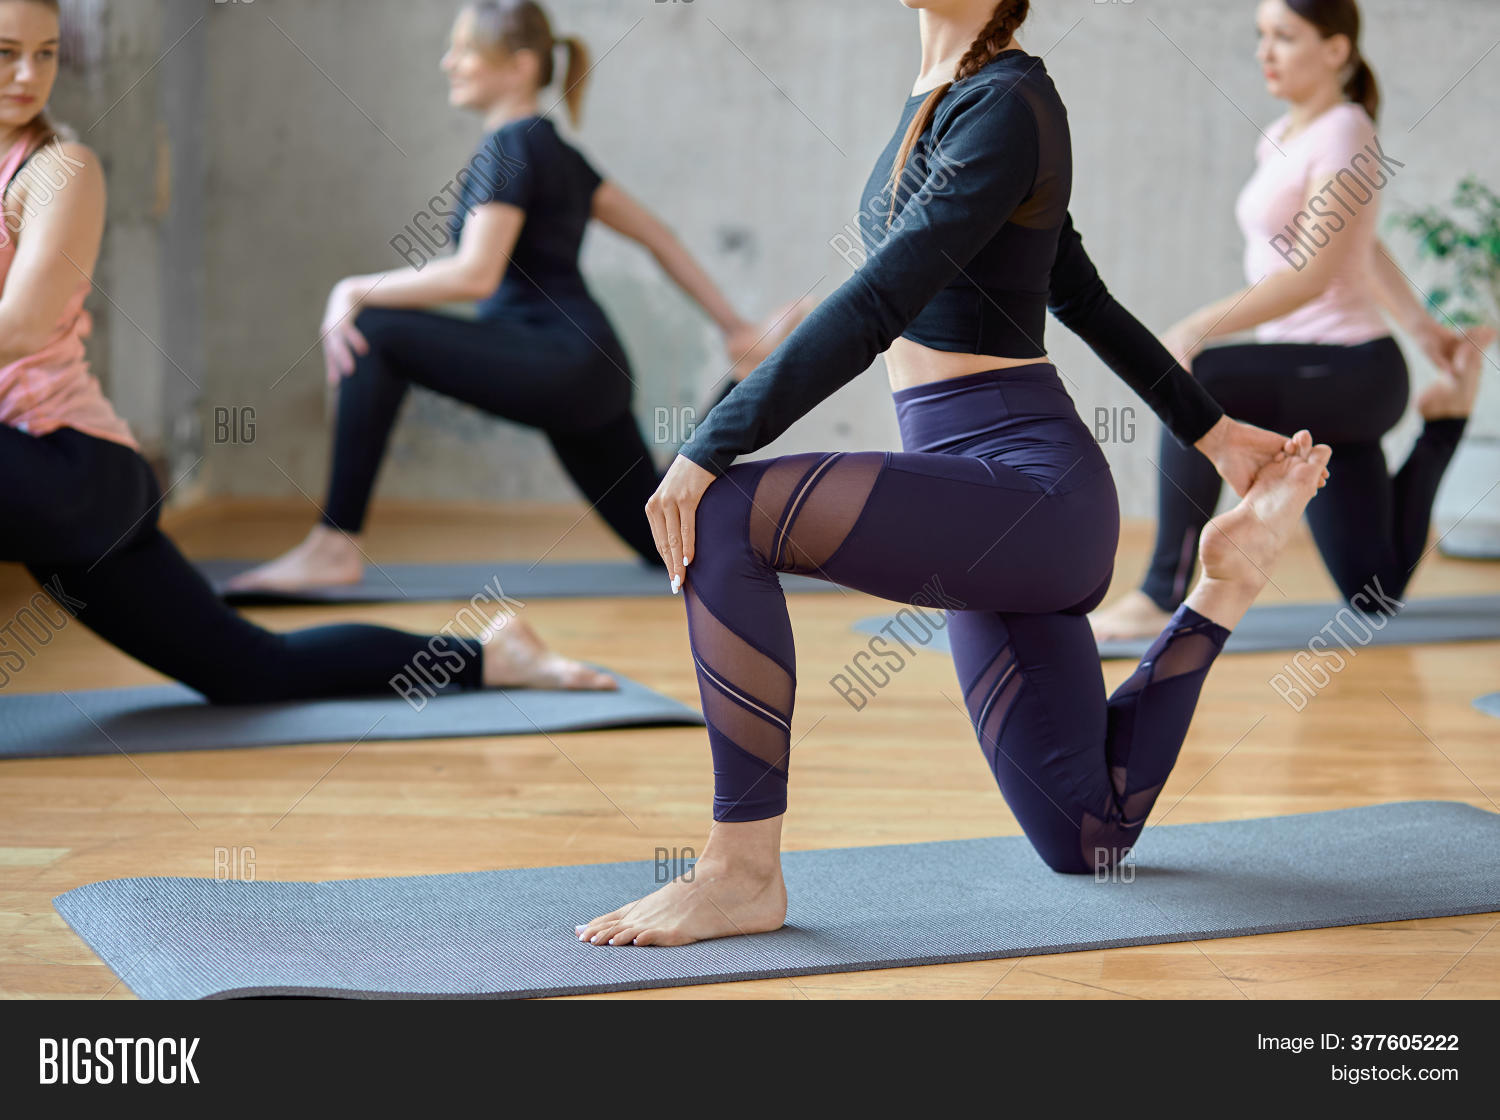 Crop Young Fit Women Image Photo Free Trial Bigstock Our website is dedicated to beautiful female feet. crop young fit women image photo